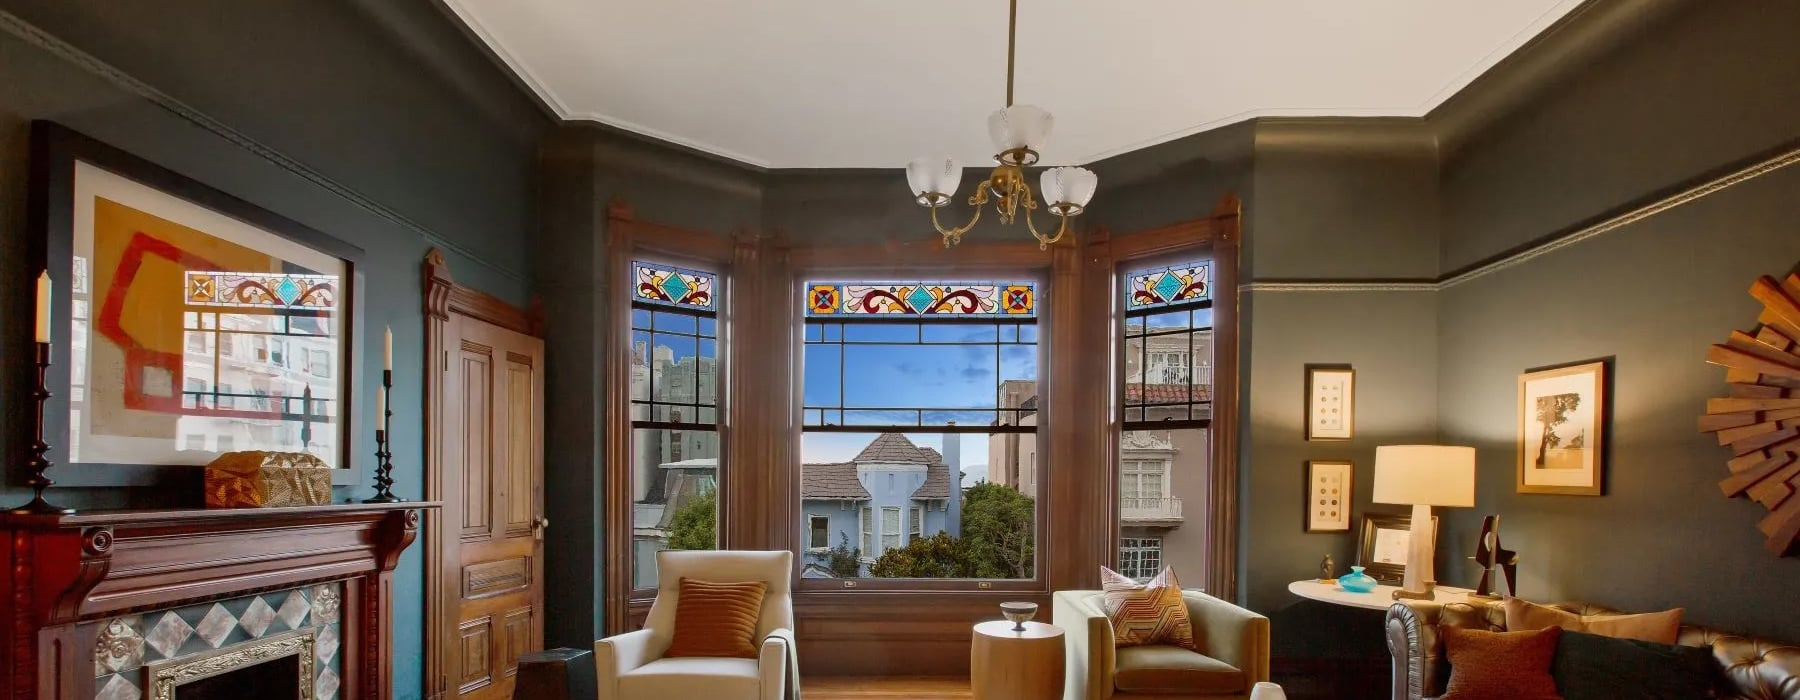 Glamorous Glass | 5 Homes With Stained-Glass Windows